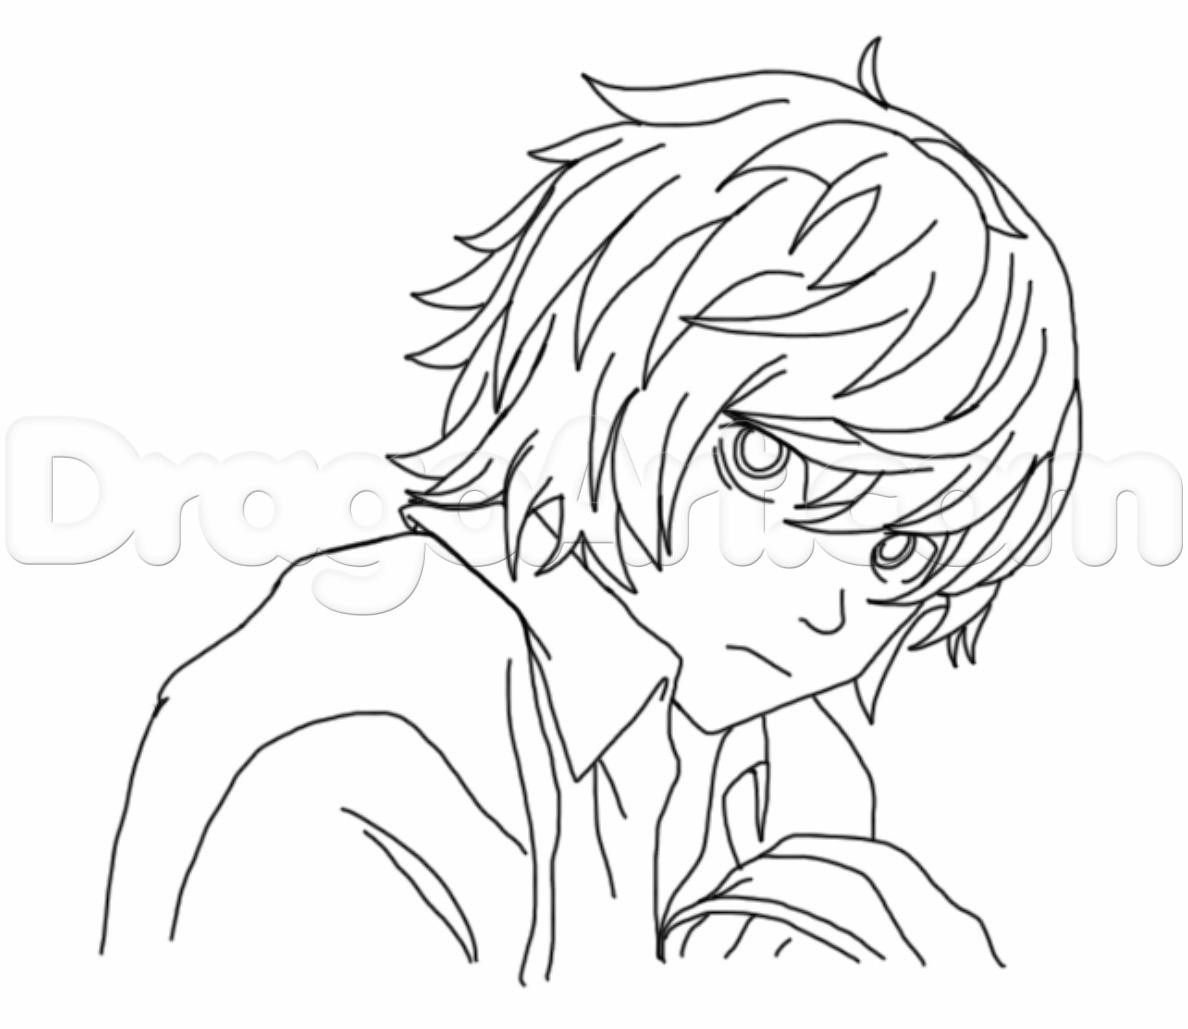 1188x1029 Coloring Death Note Coloring Pages